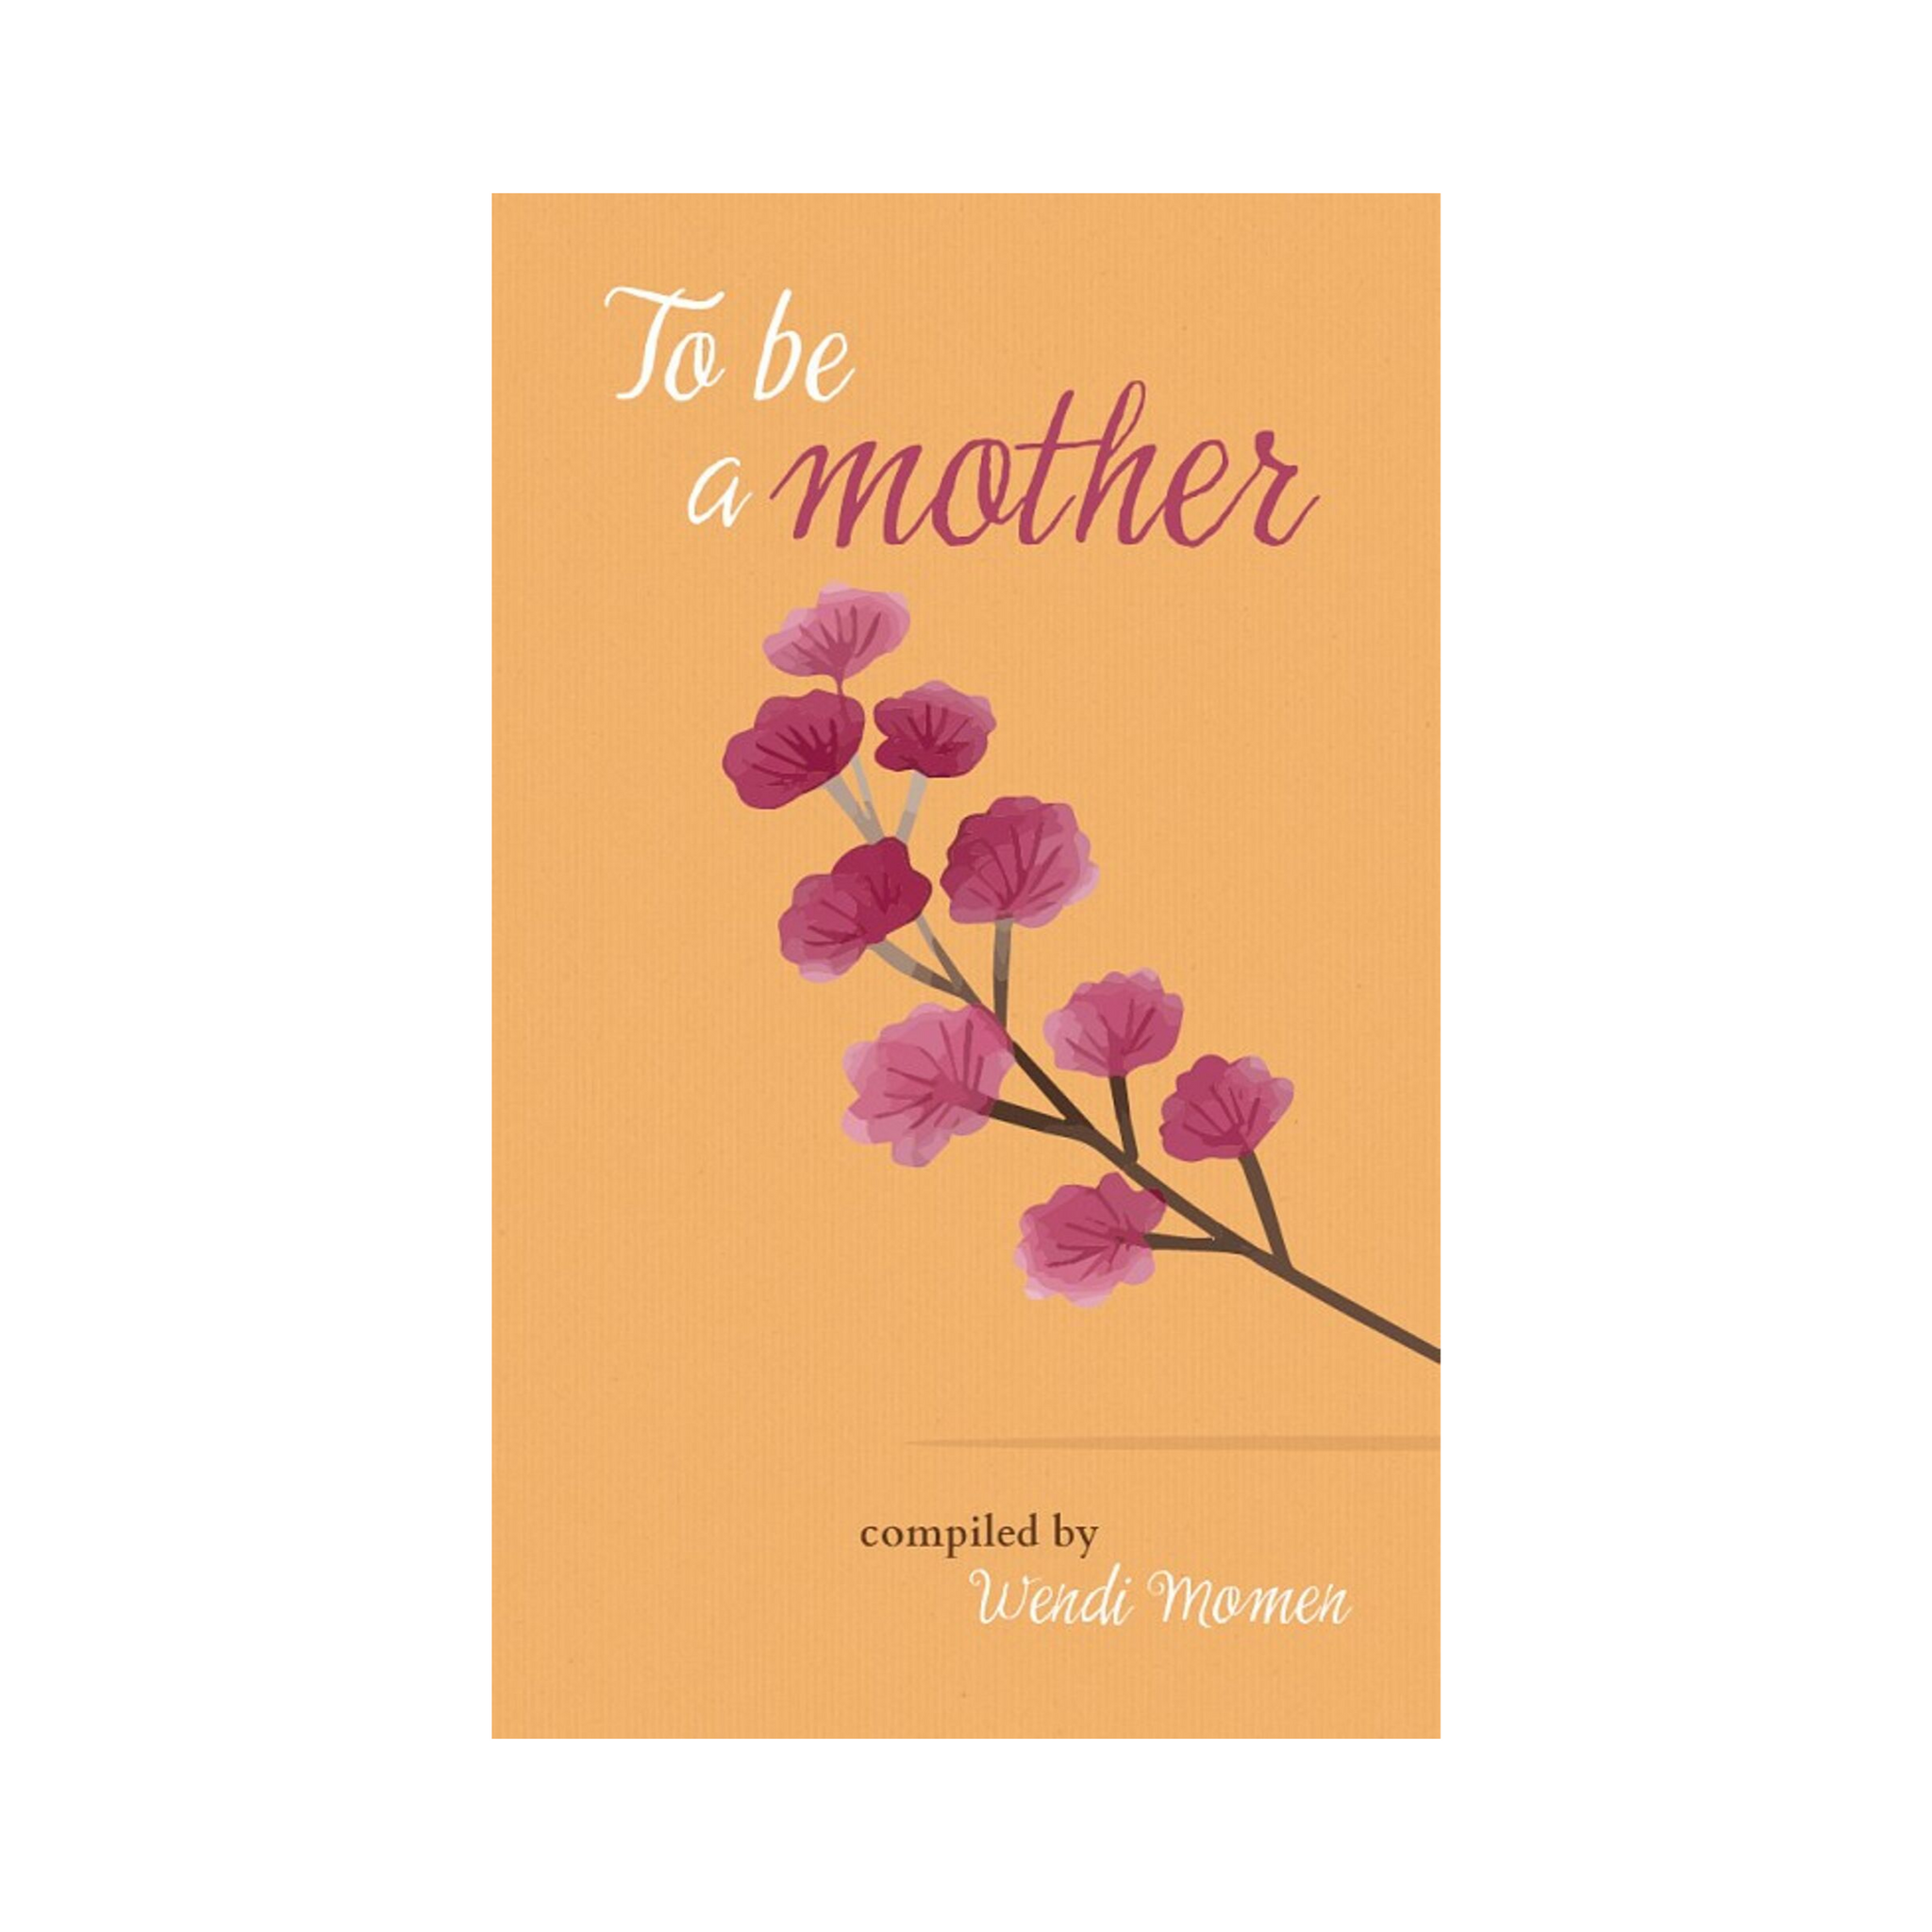 To Be a Mother - Selections from Baha'i and other scriptures, poets and thinkers about motherhood